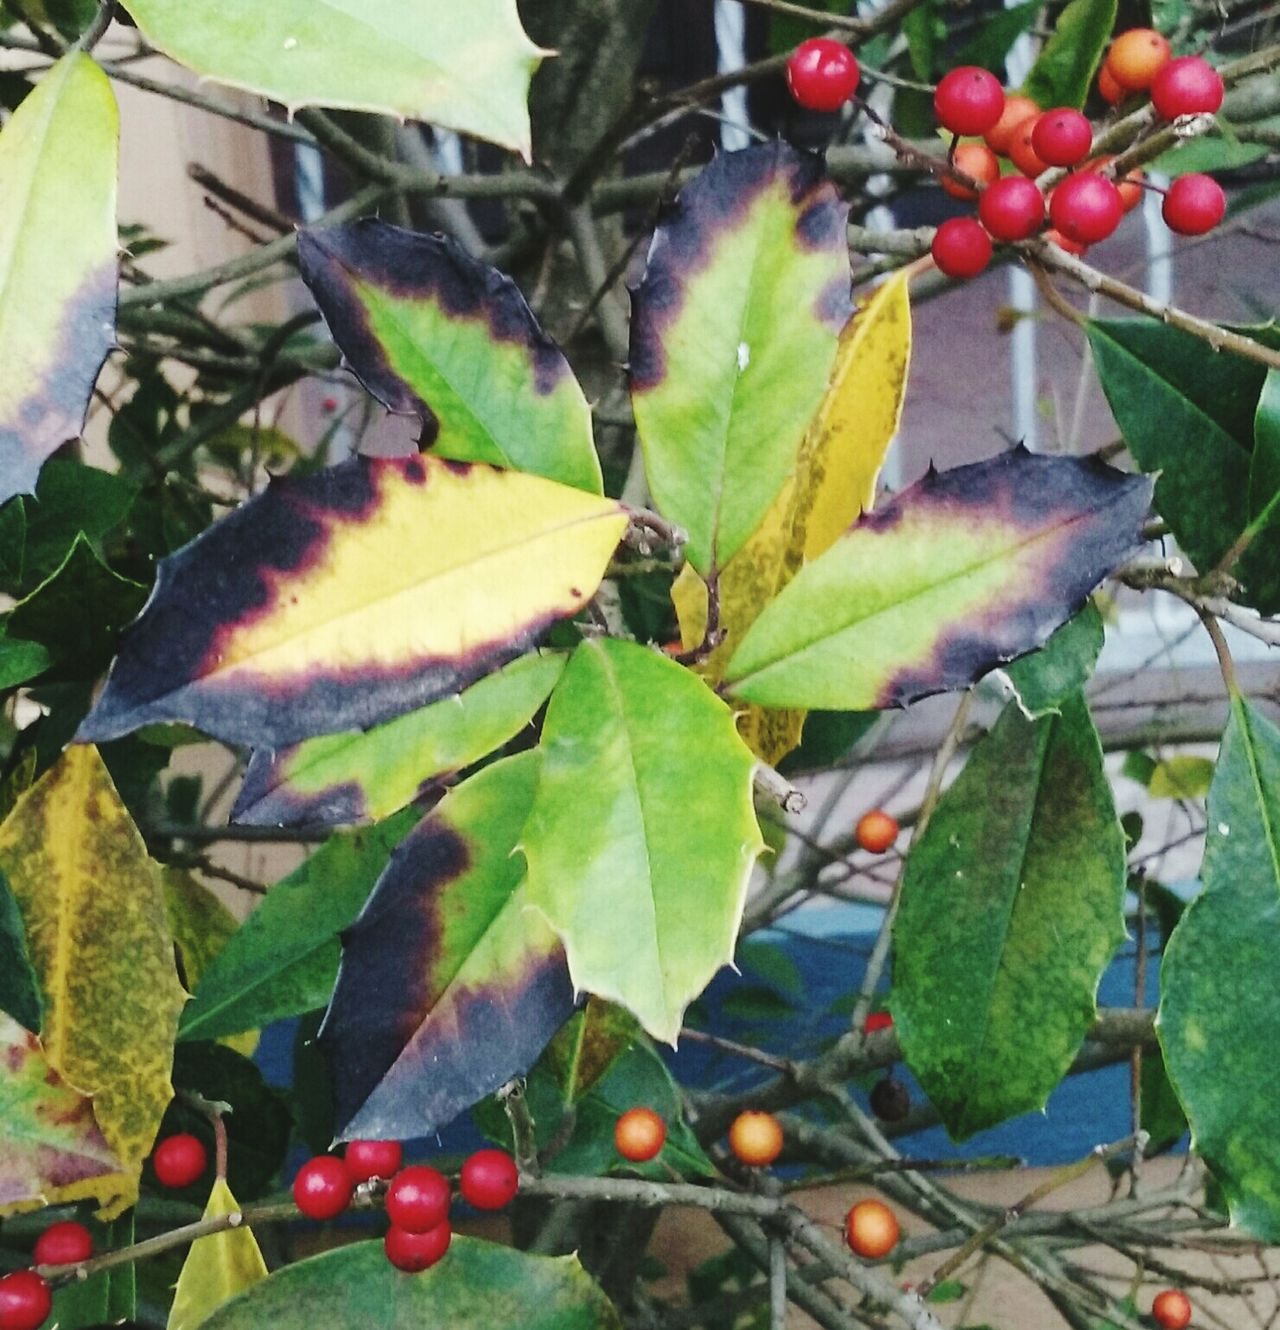 Leaves_collection Leaves🌿 Yello And Brown Leaves Red Berries Android Photography Outdoor Photography Taking Photos Branches